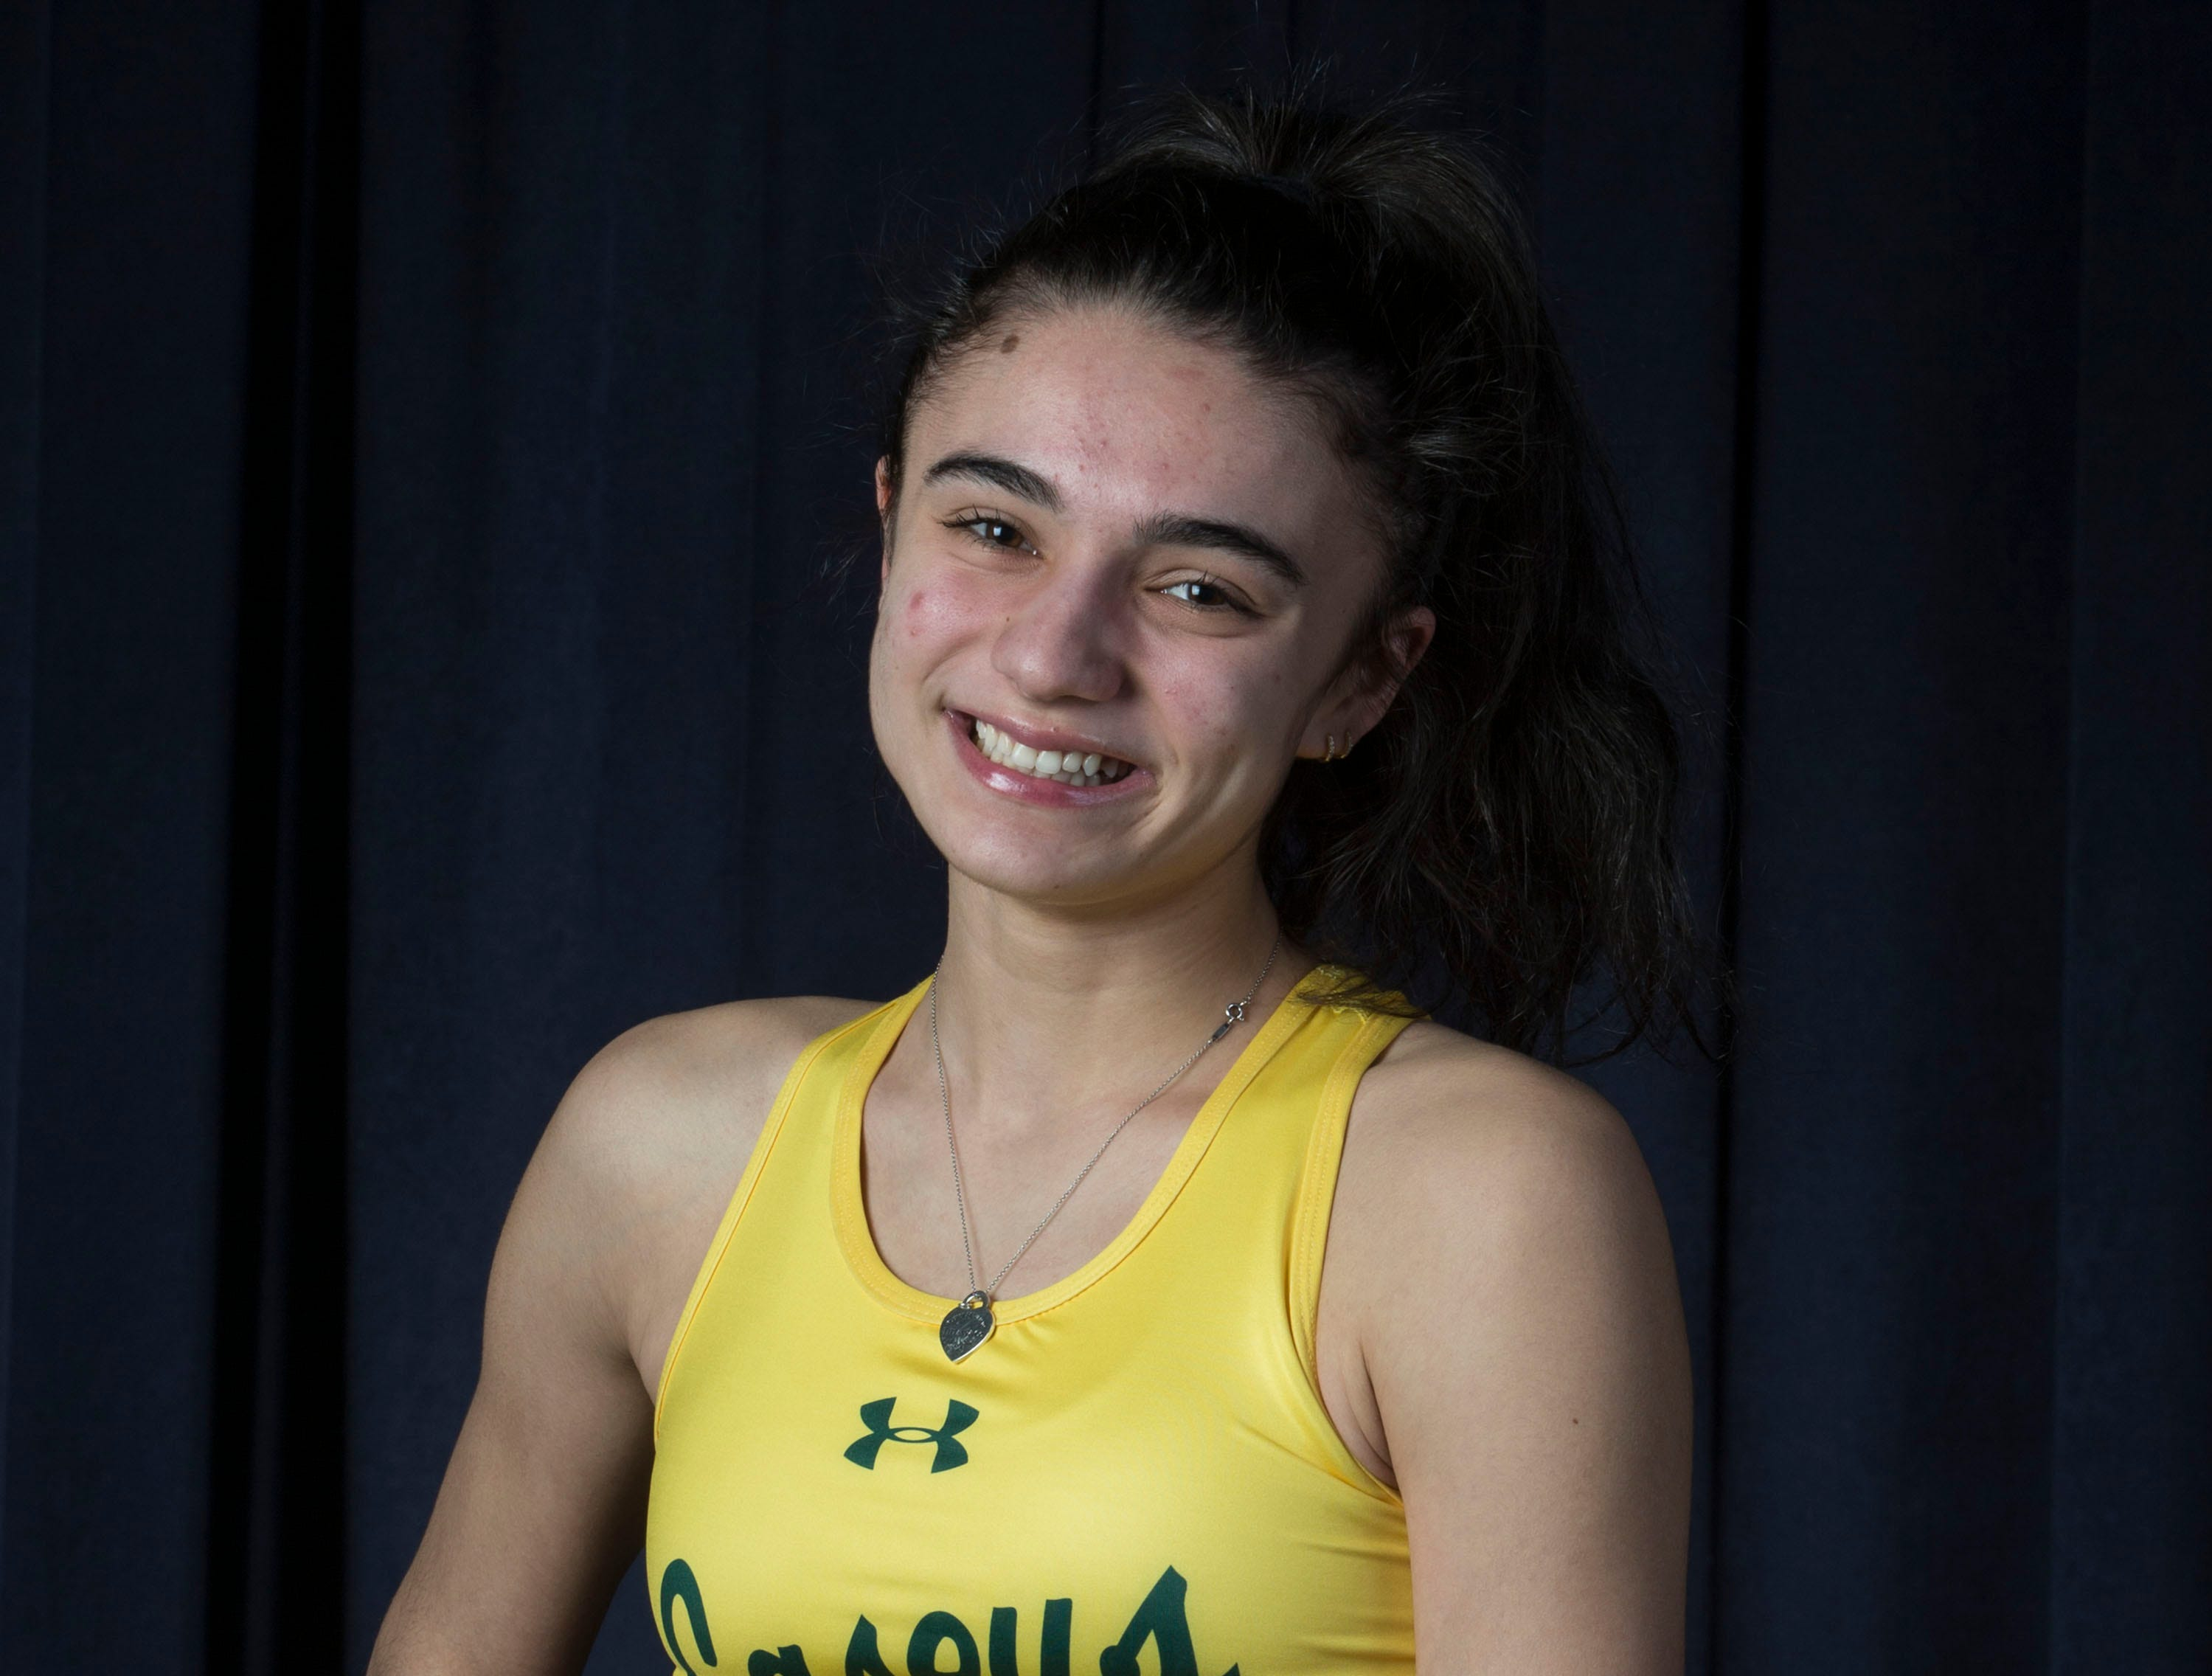 The 2019 All-Shore Girls Track- Jessie Castellano of Red Bank Catholic